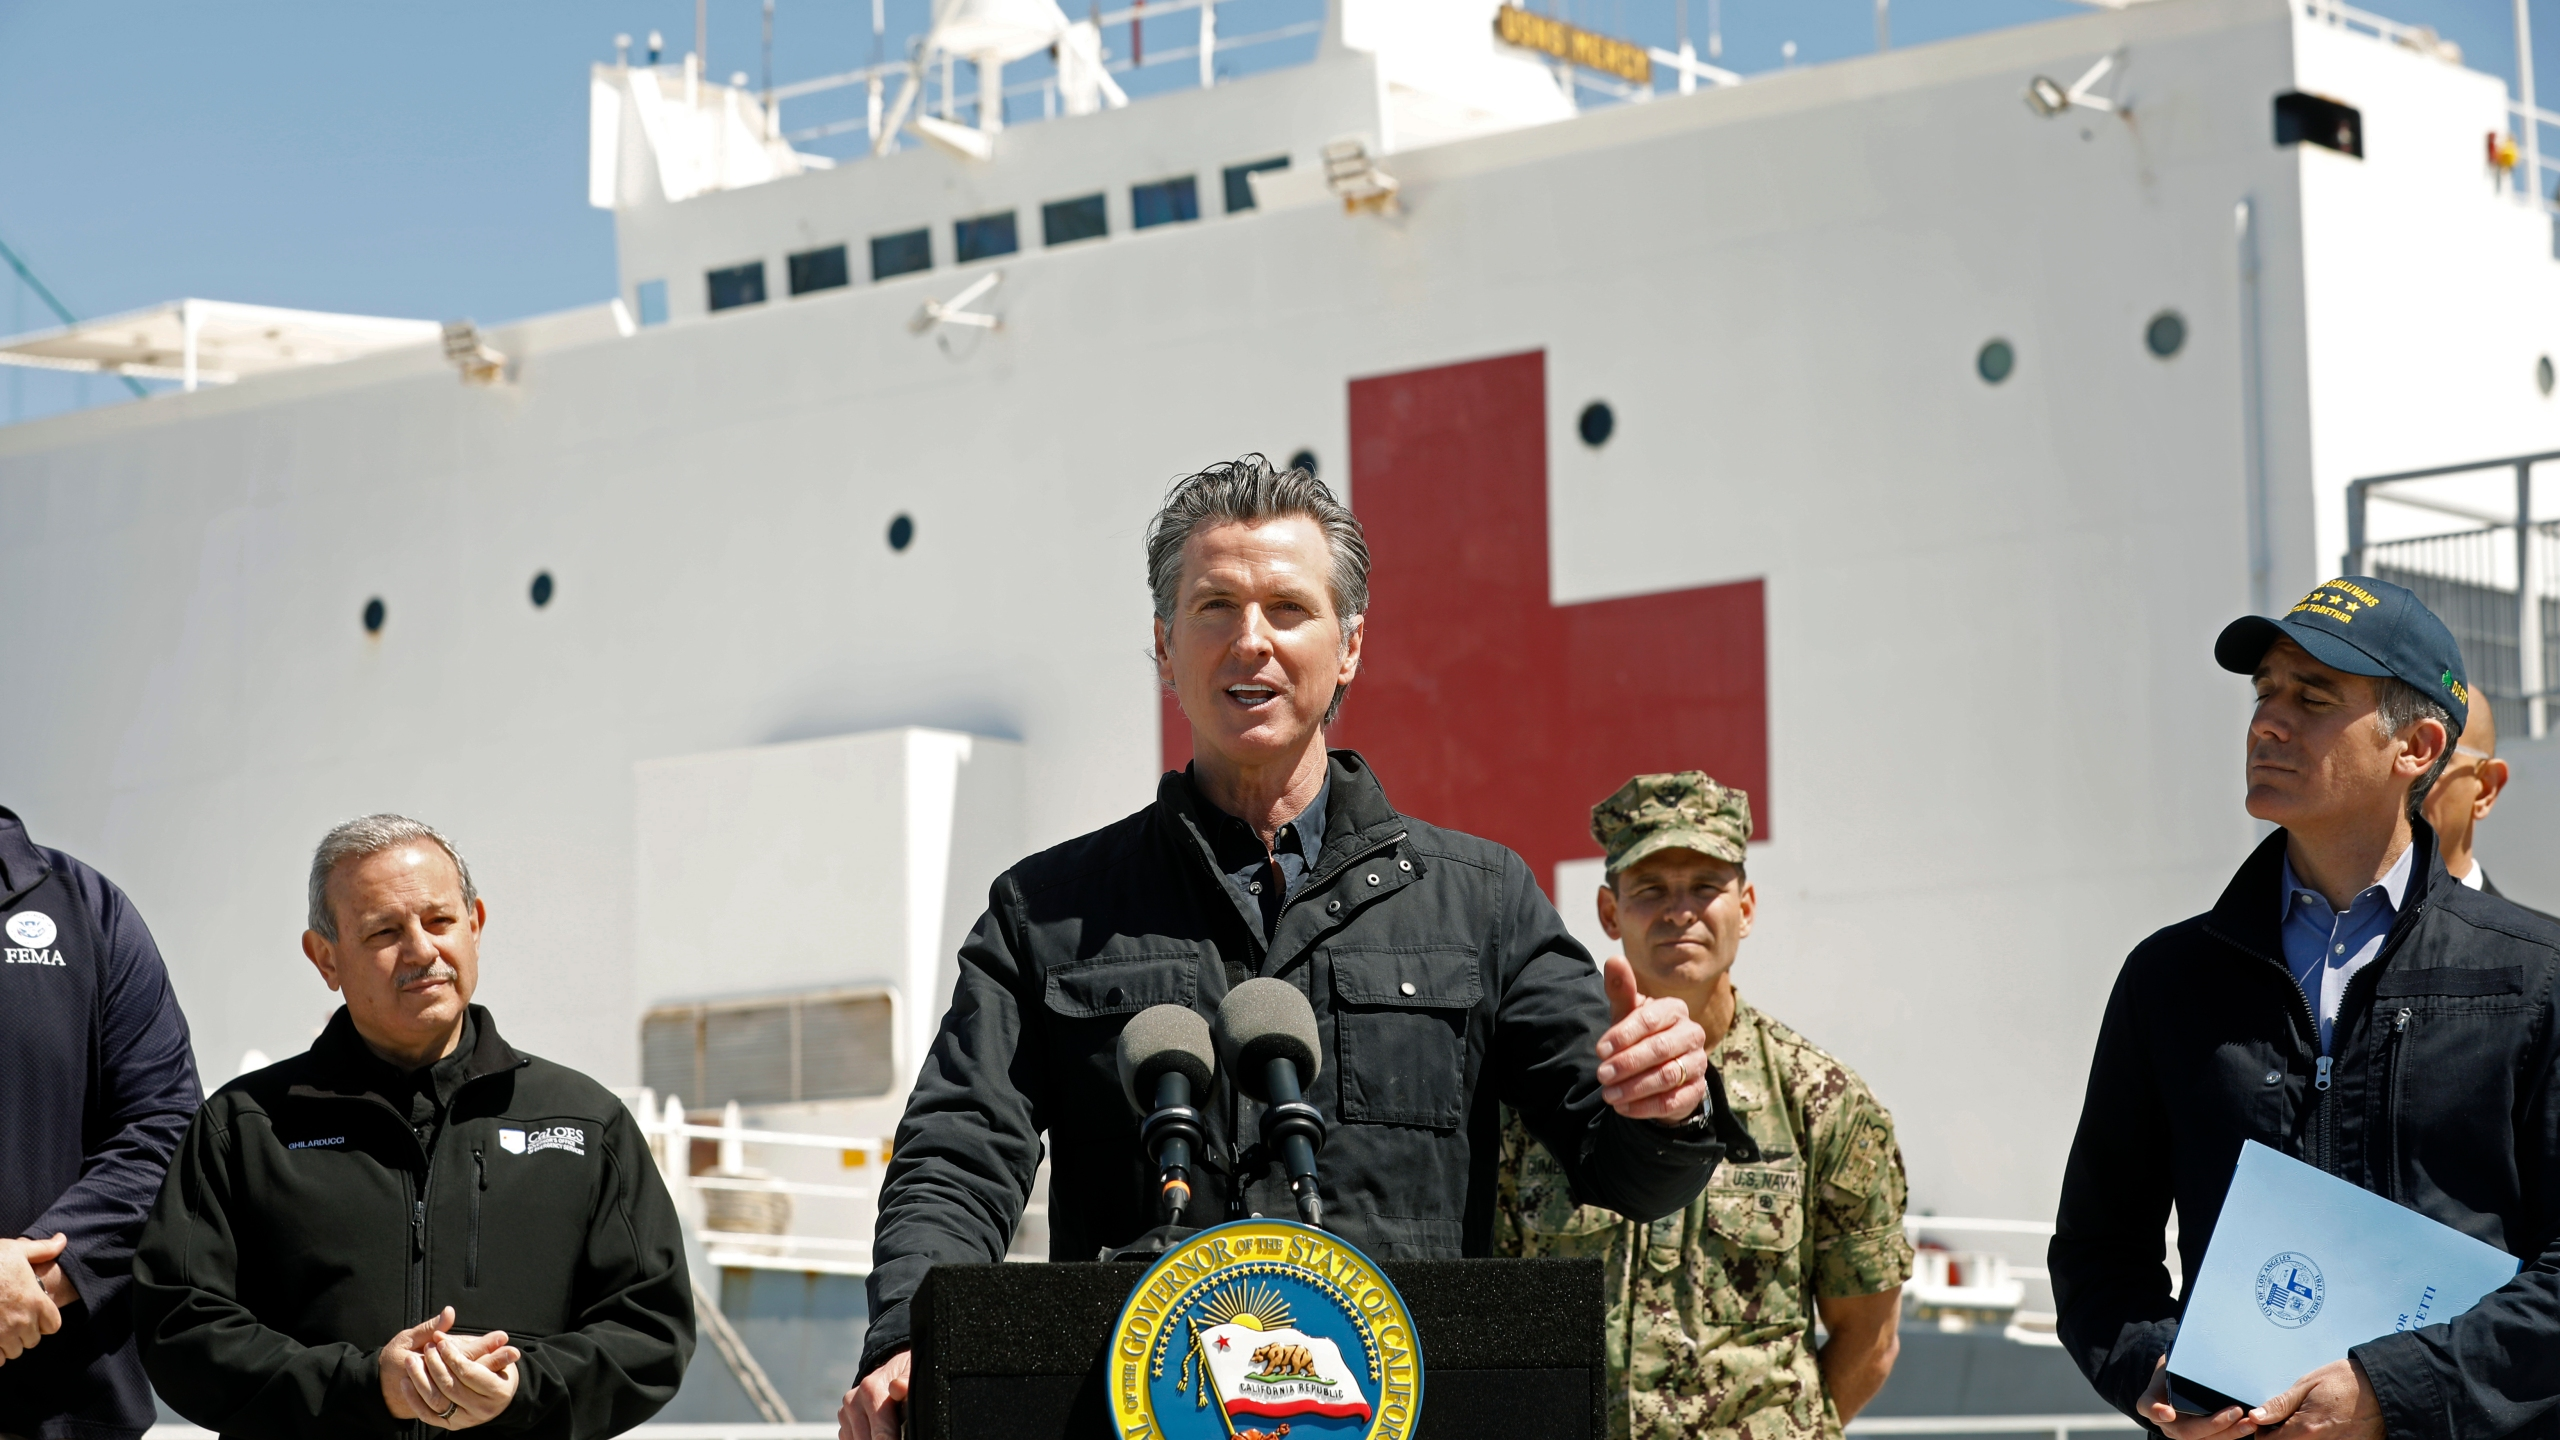 Gov. Gavin Newsom speaks in front of the hospital ship USNS Mercy after it arrived into the Port of Los Angeles on March 27, 2020. (Credit: Carolyn Cole / Getty Images)